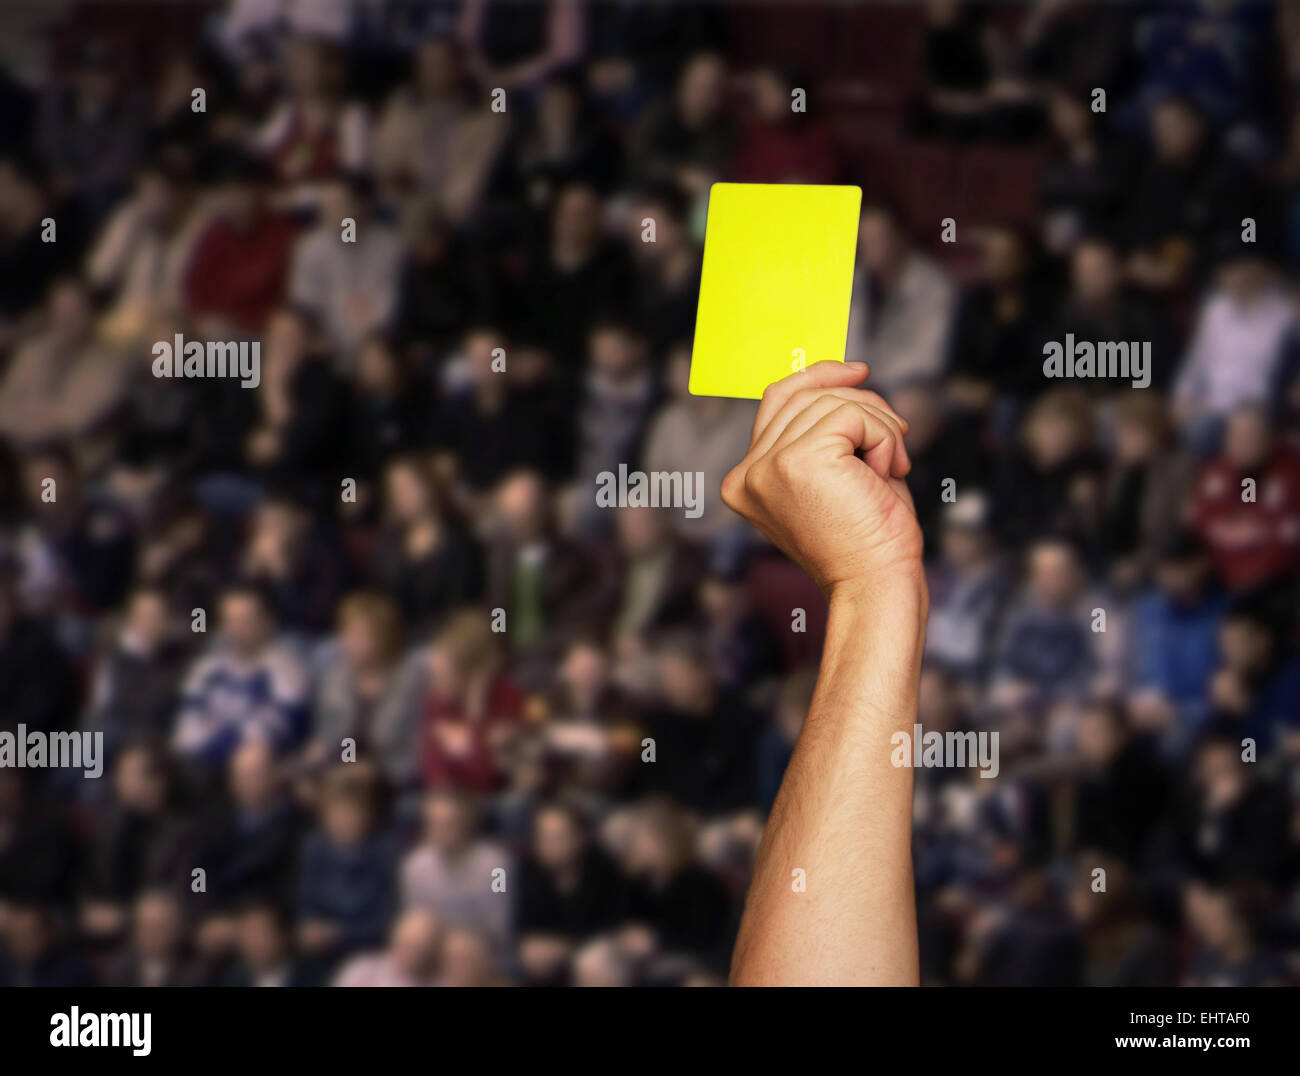 yellow Card - Stock Image